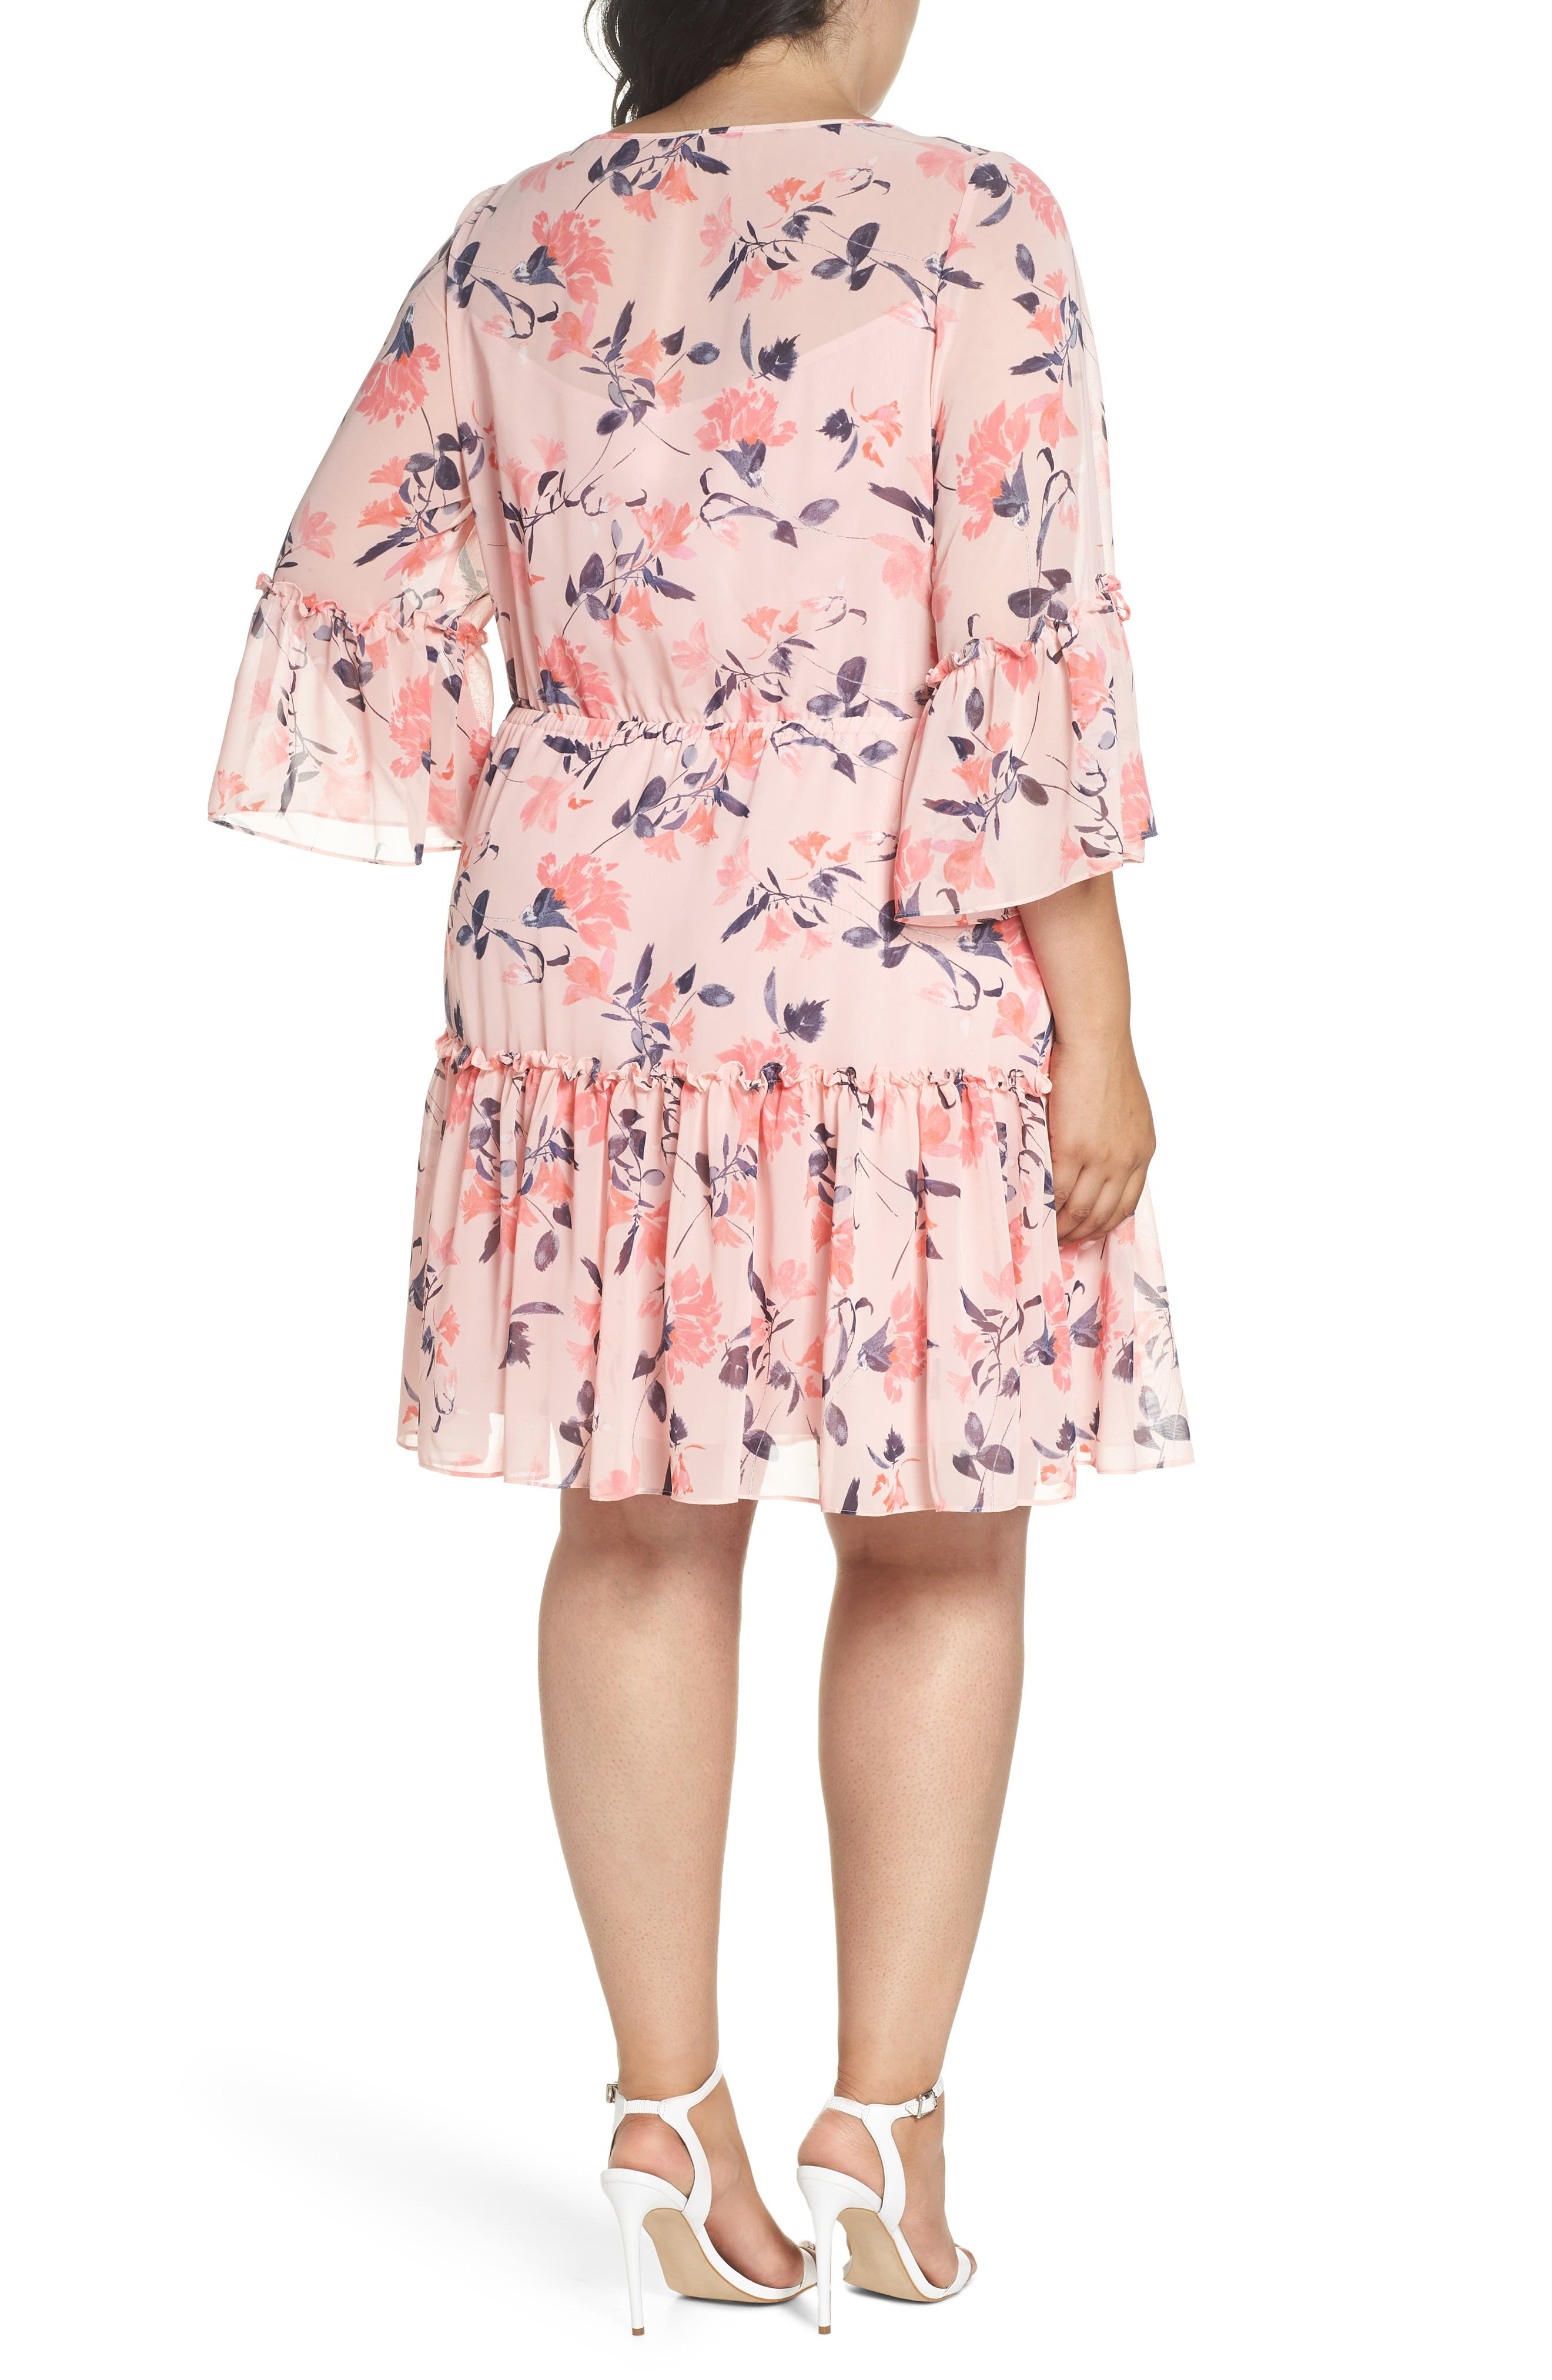 Elza J Floral Bell Sleeve Chiffon Dress,                             Alternate thumbnail 2, color,                             684